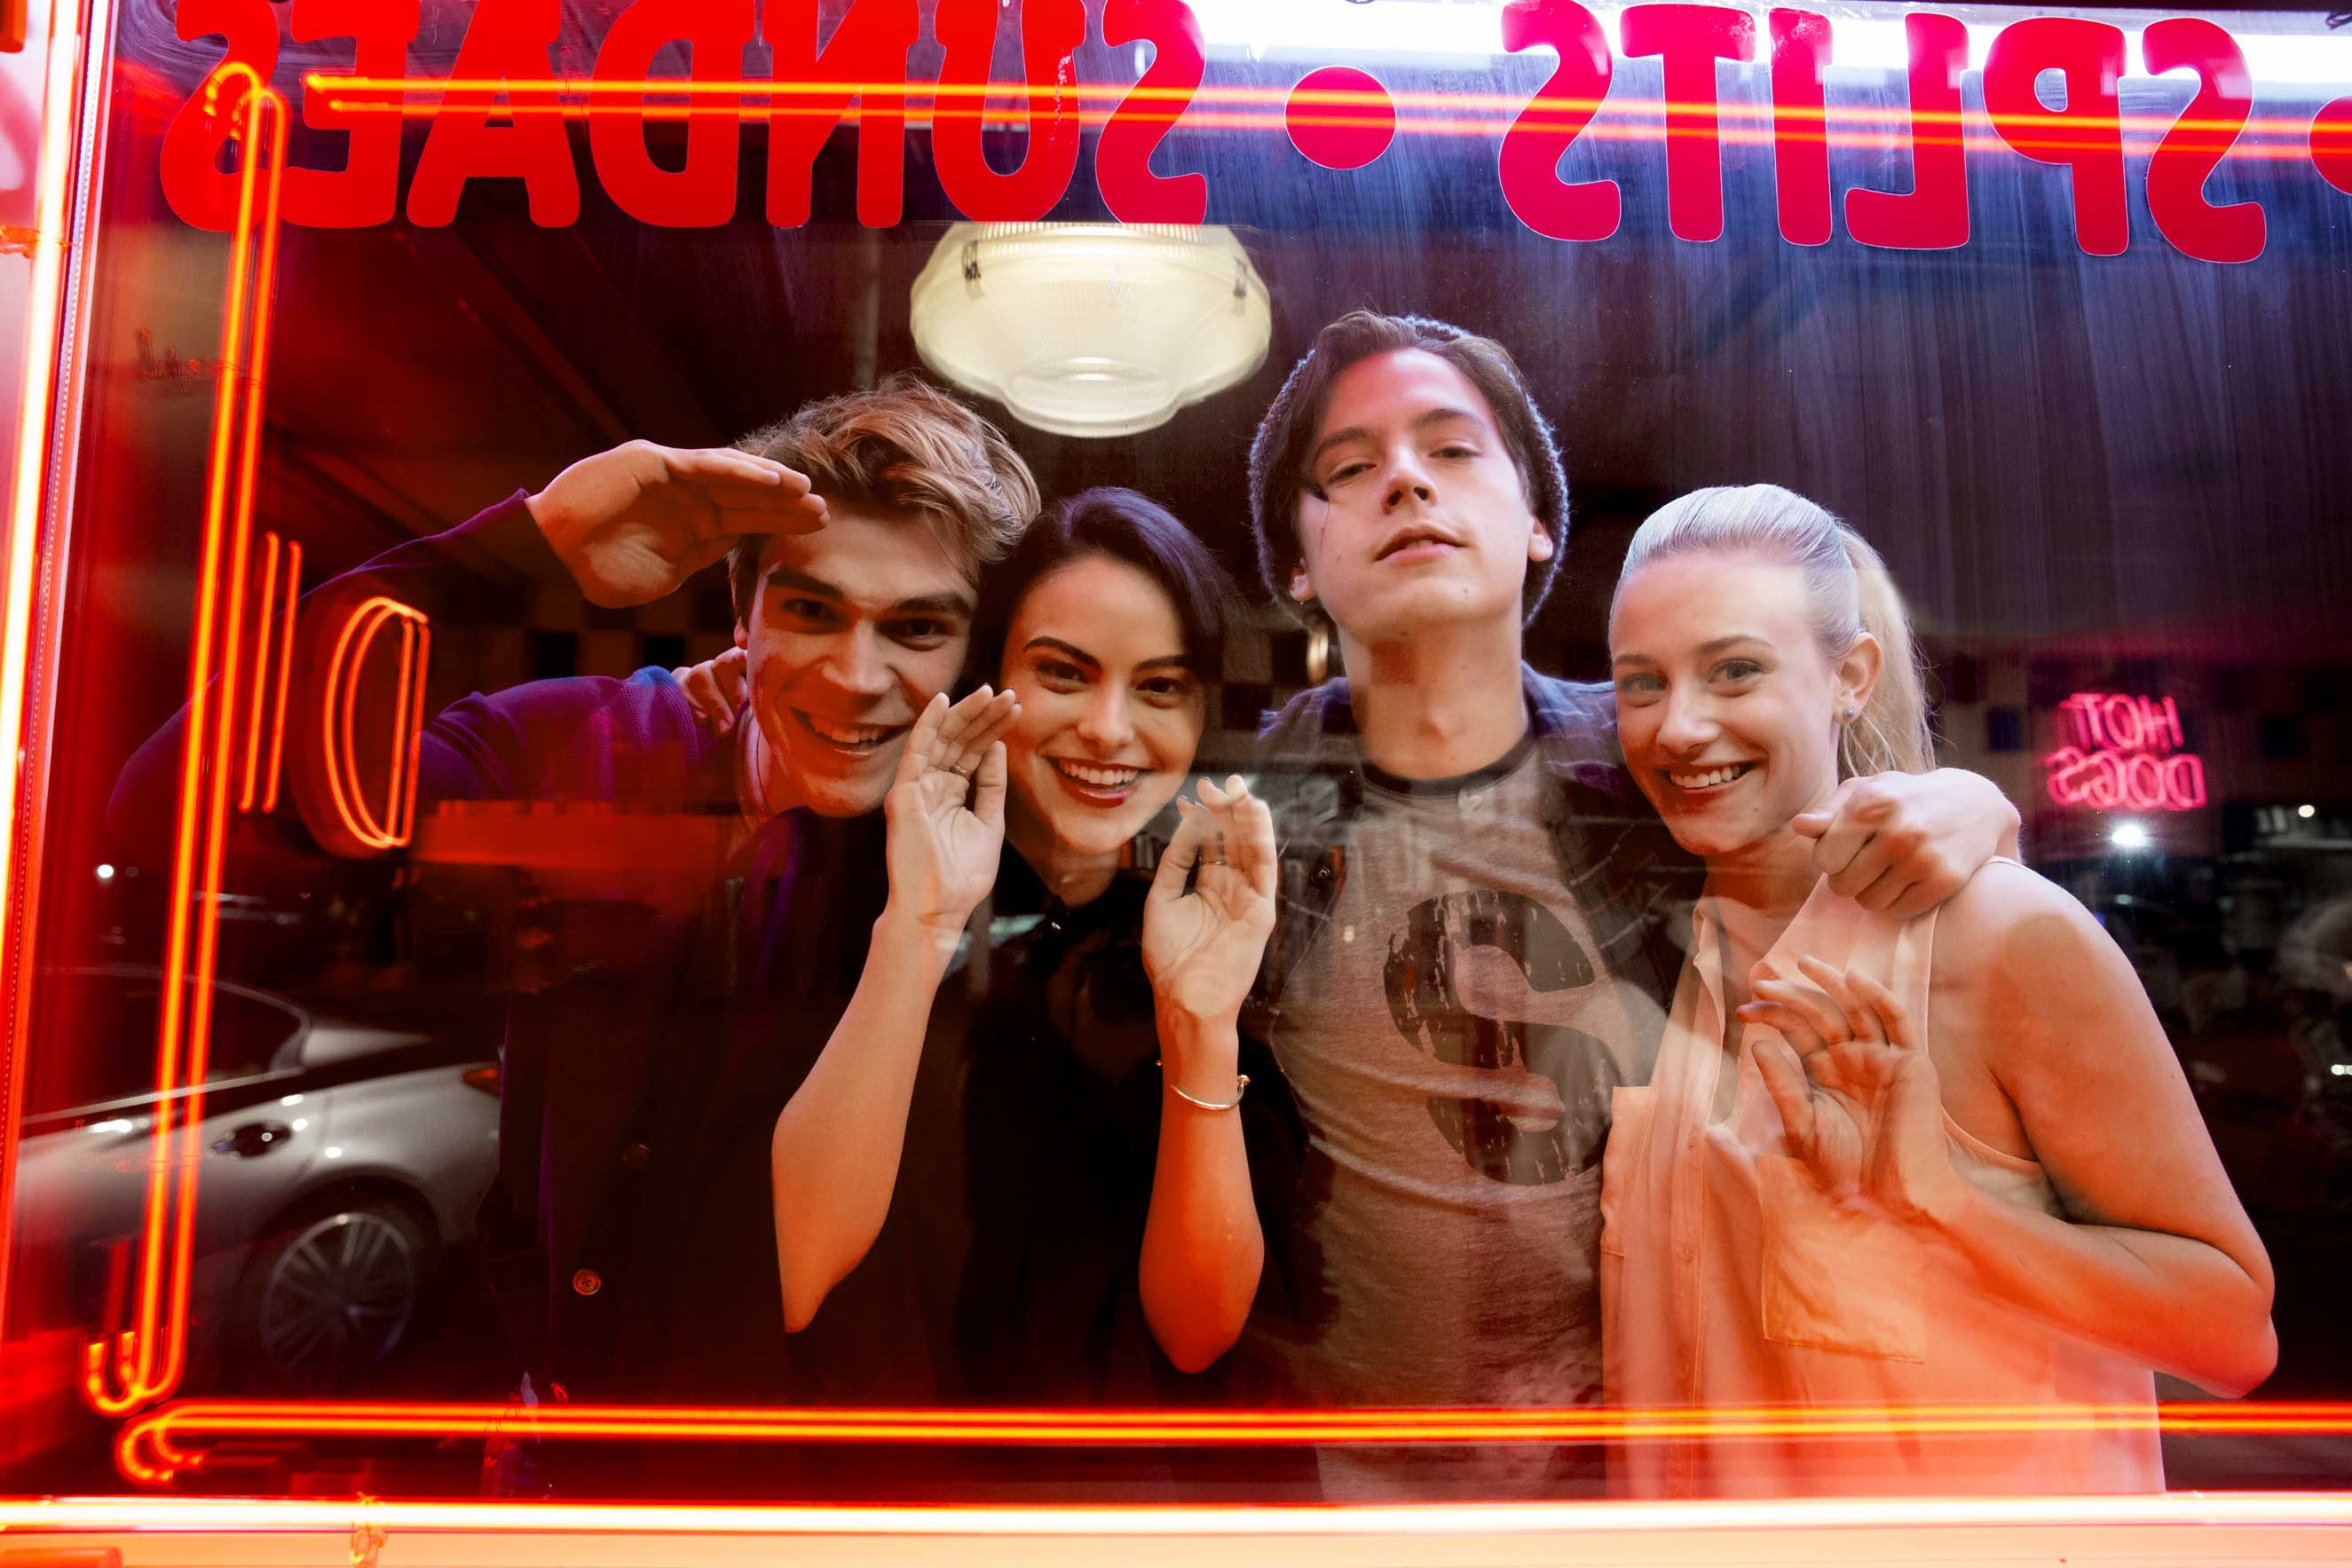 Sugar, sugar: Archie (Apa), Veronica (Mendes), Jughead (Sprouse) and Betty (Reinhart) reborn on the CW